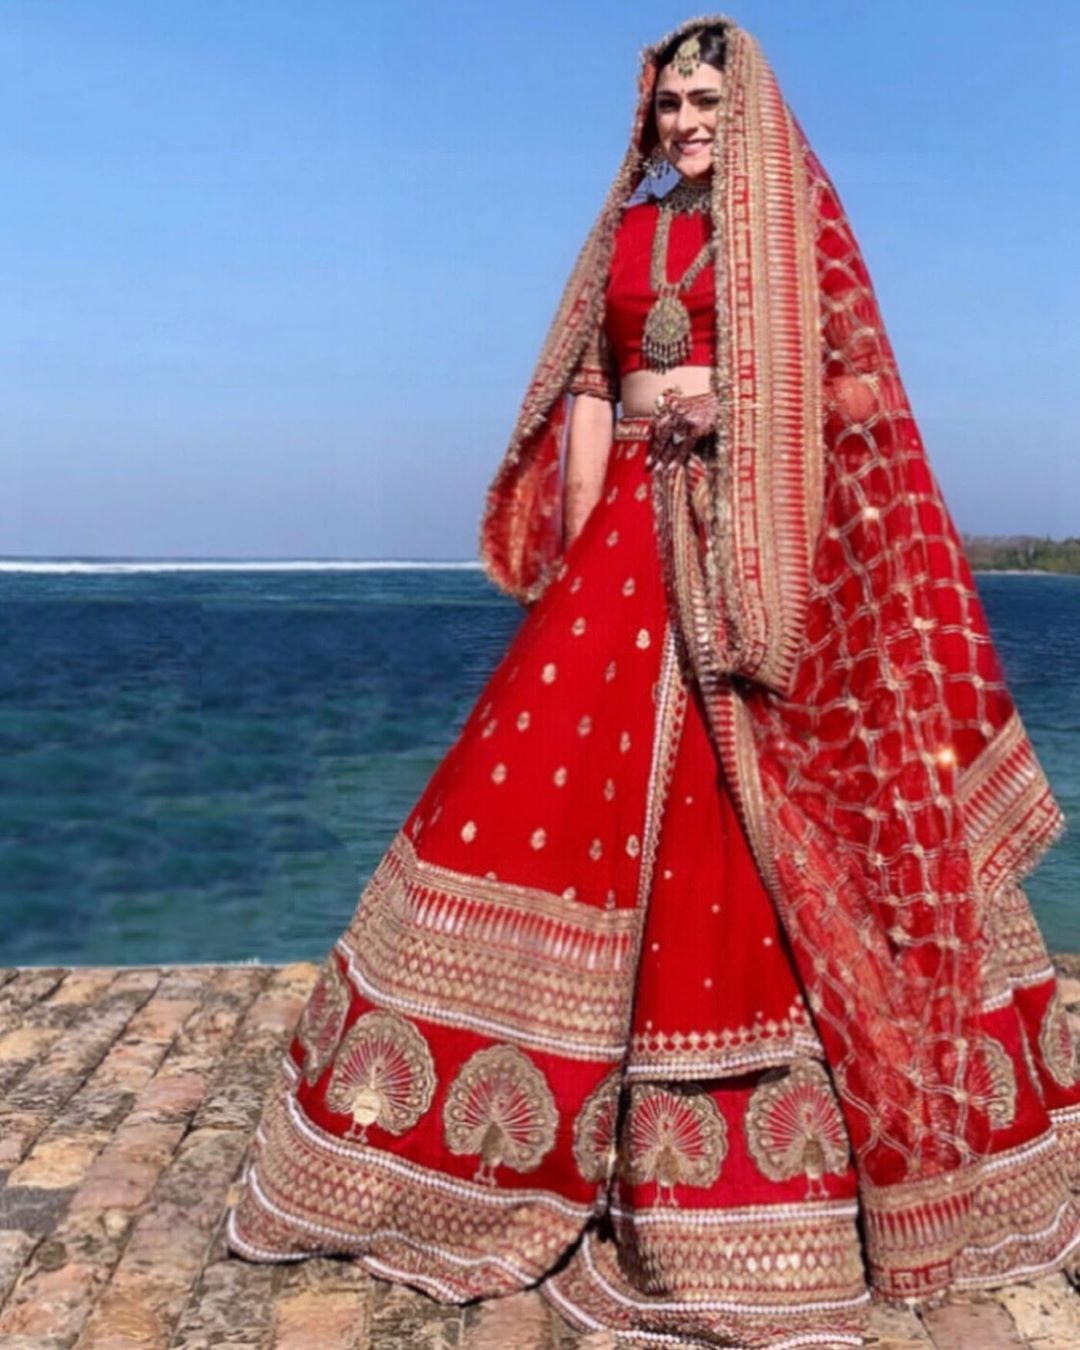 Deepika Padukone Red Bridal Lehenga Bridal Lehenga Red Indian Bride Outfits Indian Bridal Outfits